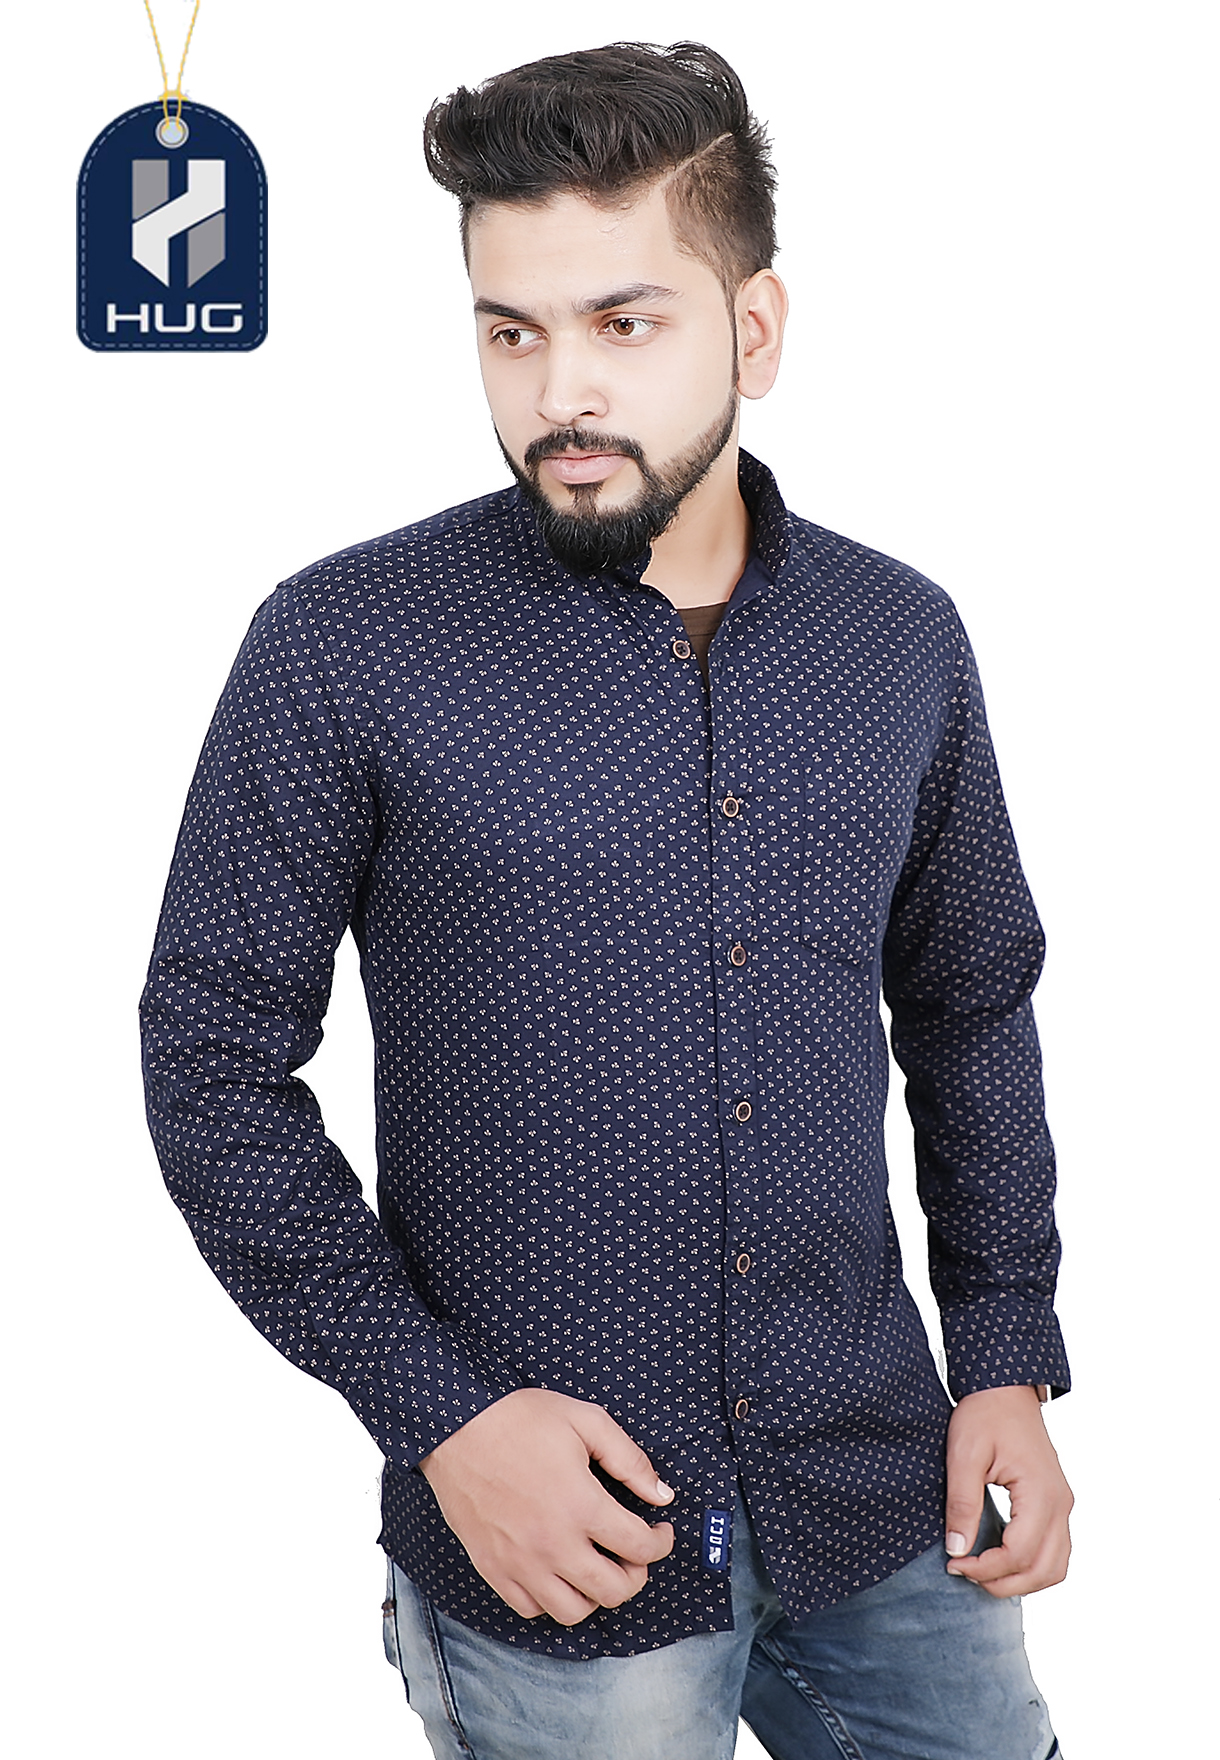 HUG Mens Casual Shirts Size XL - FBU 0119